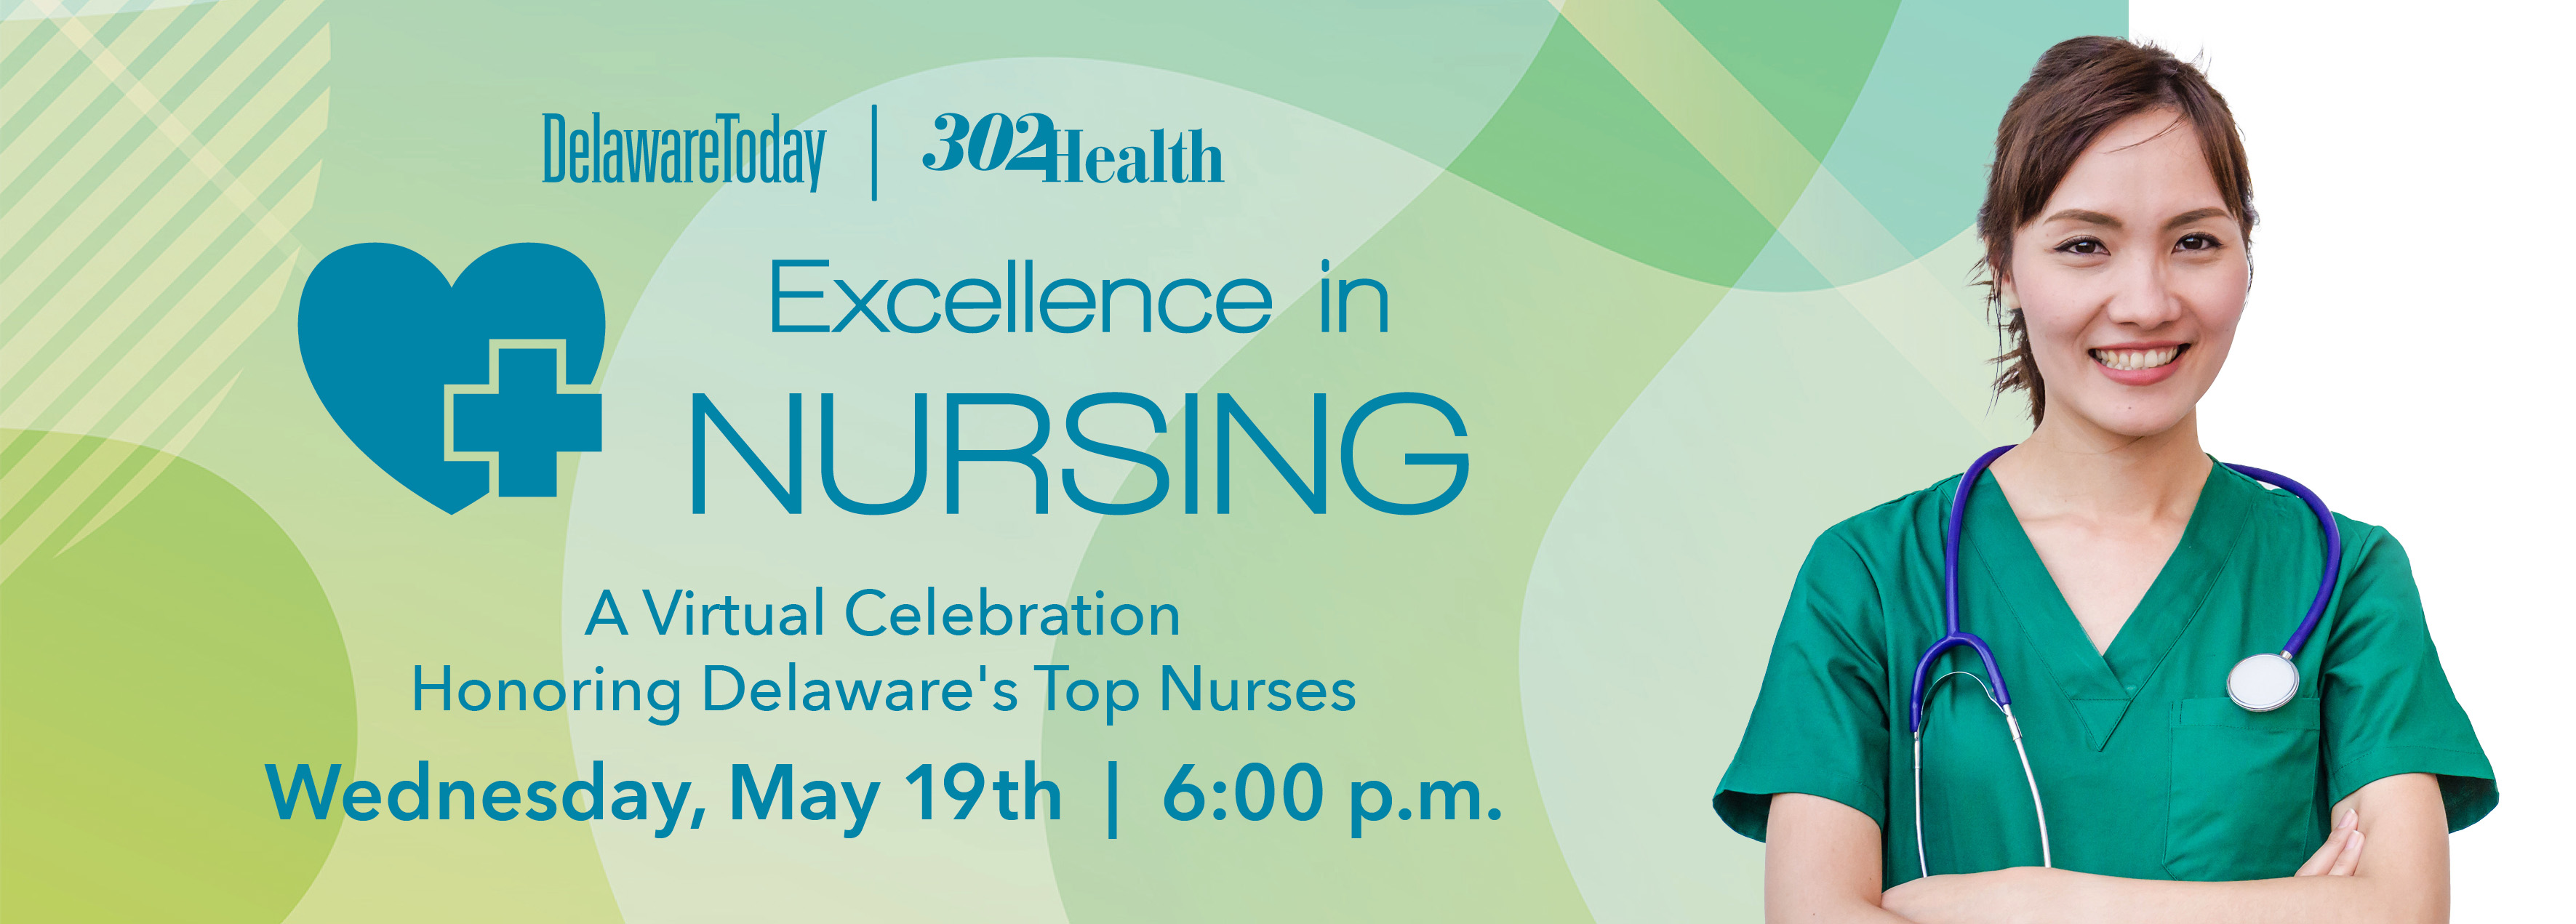 Tickets for Delaware Today's Excellence in Nursing 2021 in Wilmington from ShowClix